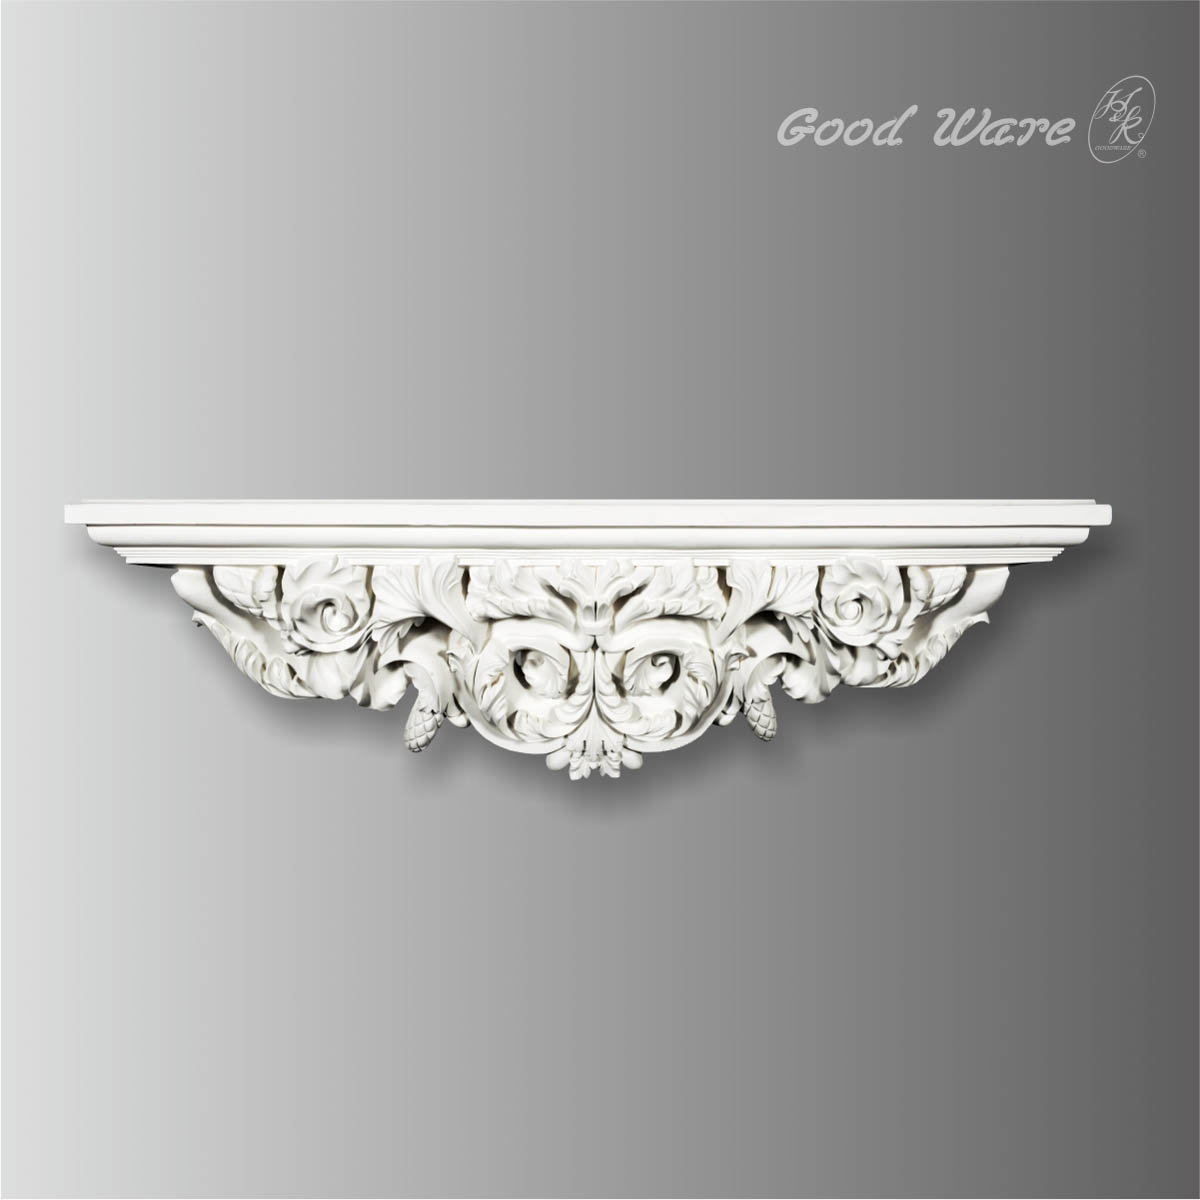 Decorative Wall Shelves For Bathroom : Baroque decorative wall shelves for bathroom